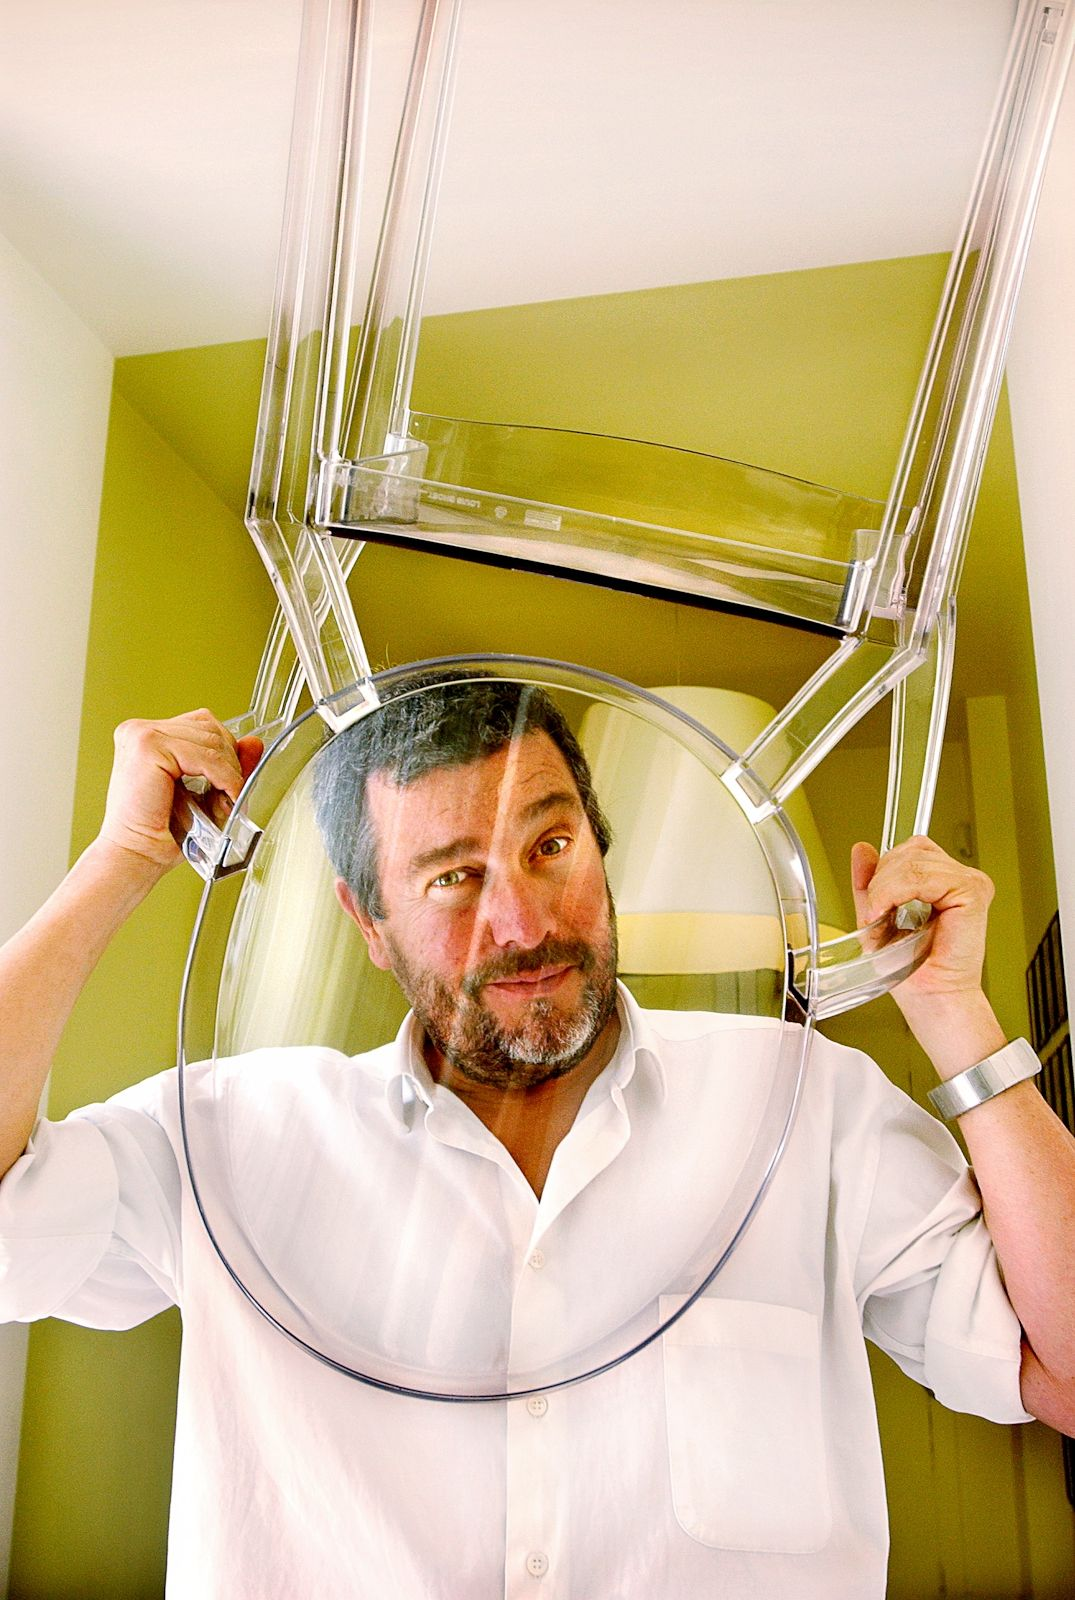 Philippe Starck By Jimmy Kets Филипп старк Дизайн